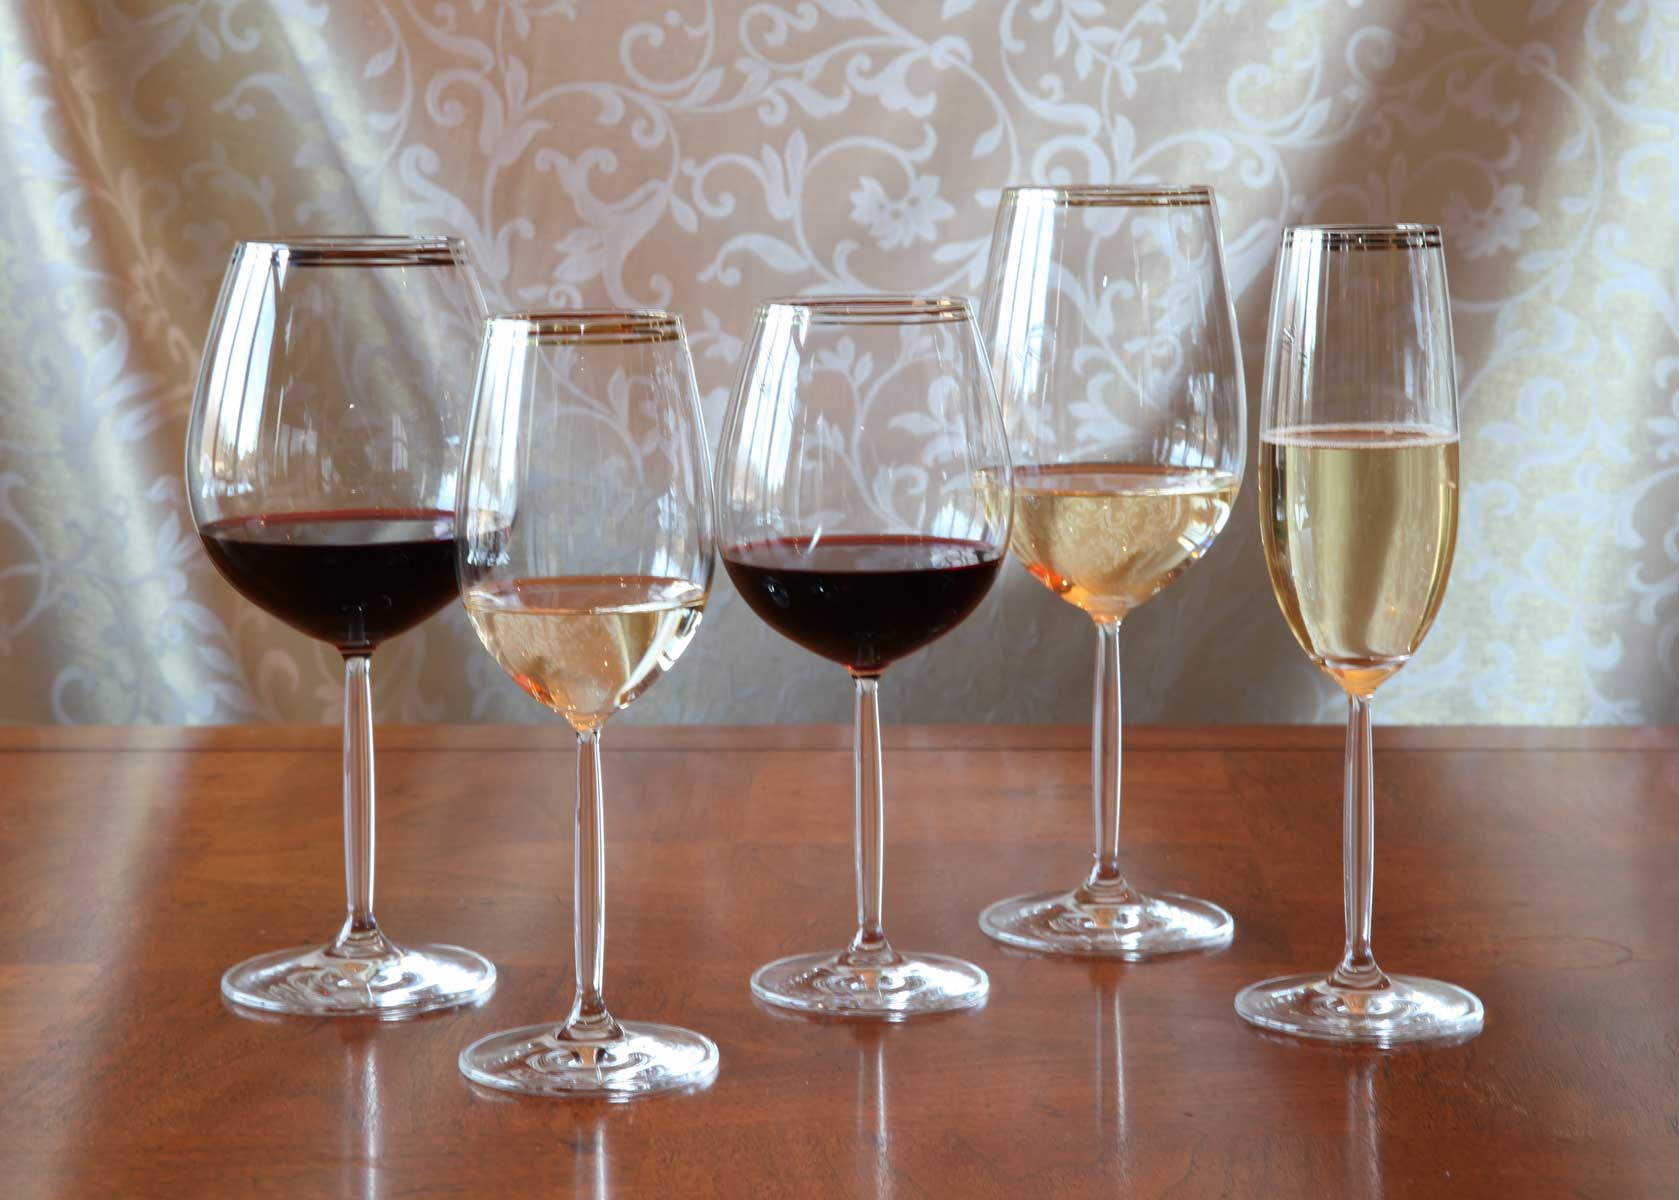 Schott Zwiesel Wine Glasses | Wholesale Plates and Glasses | Zwiesel Glassware